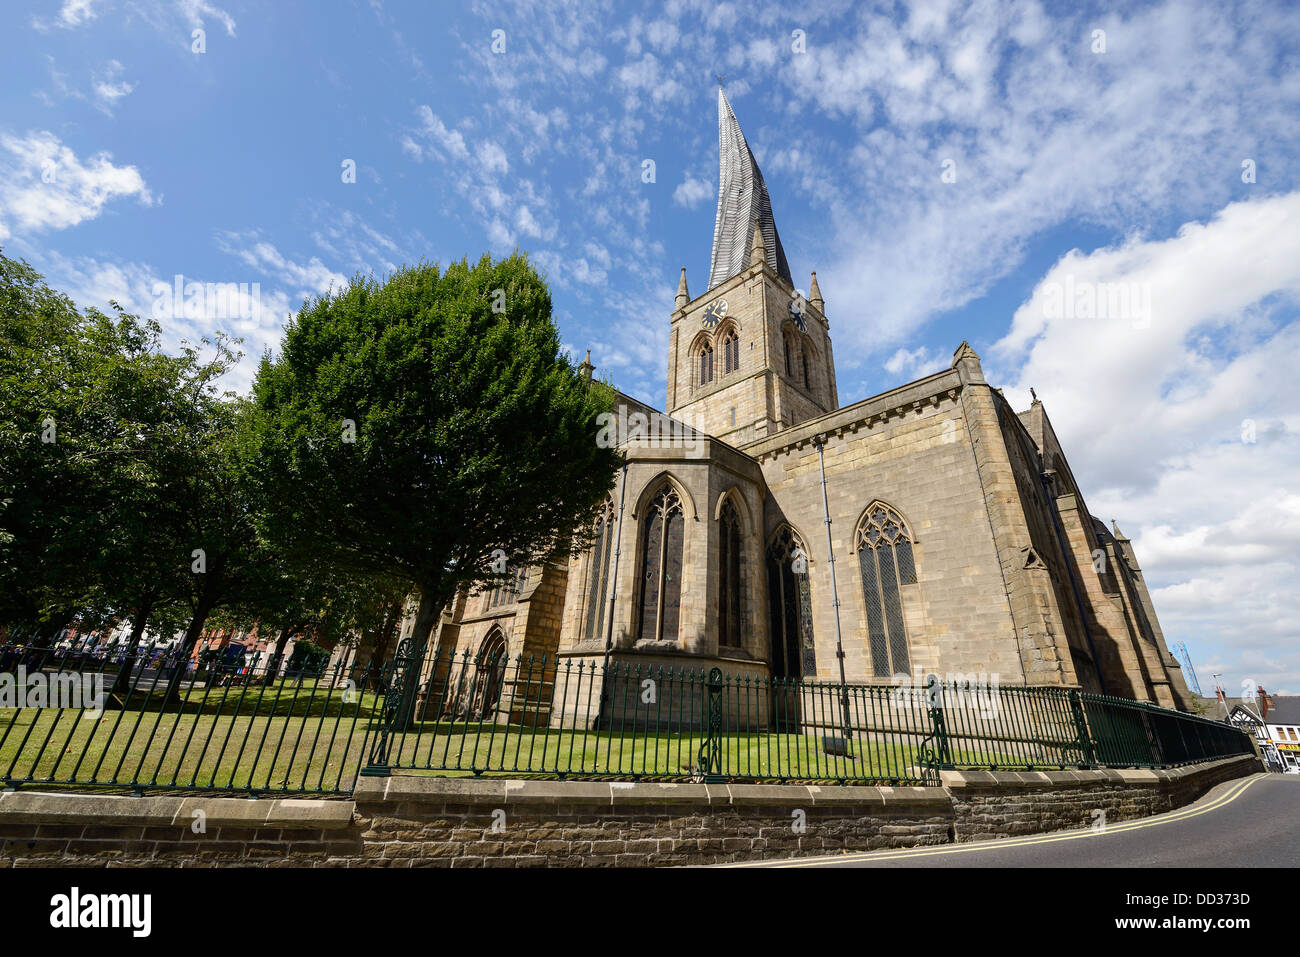 The crooked spire of the Church of St Mary and All Saints Chesterfield UK - Stock Image